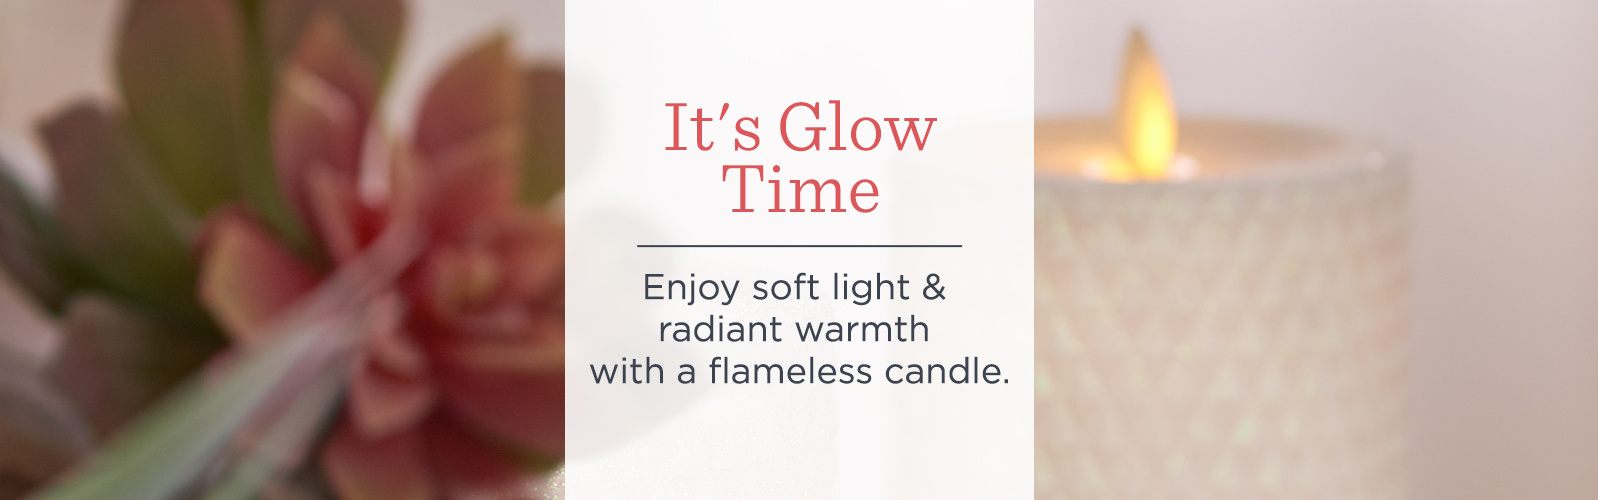 It's Glow Time - Enjoy soft light & radiant warmth with a flameless candle.